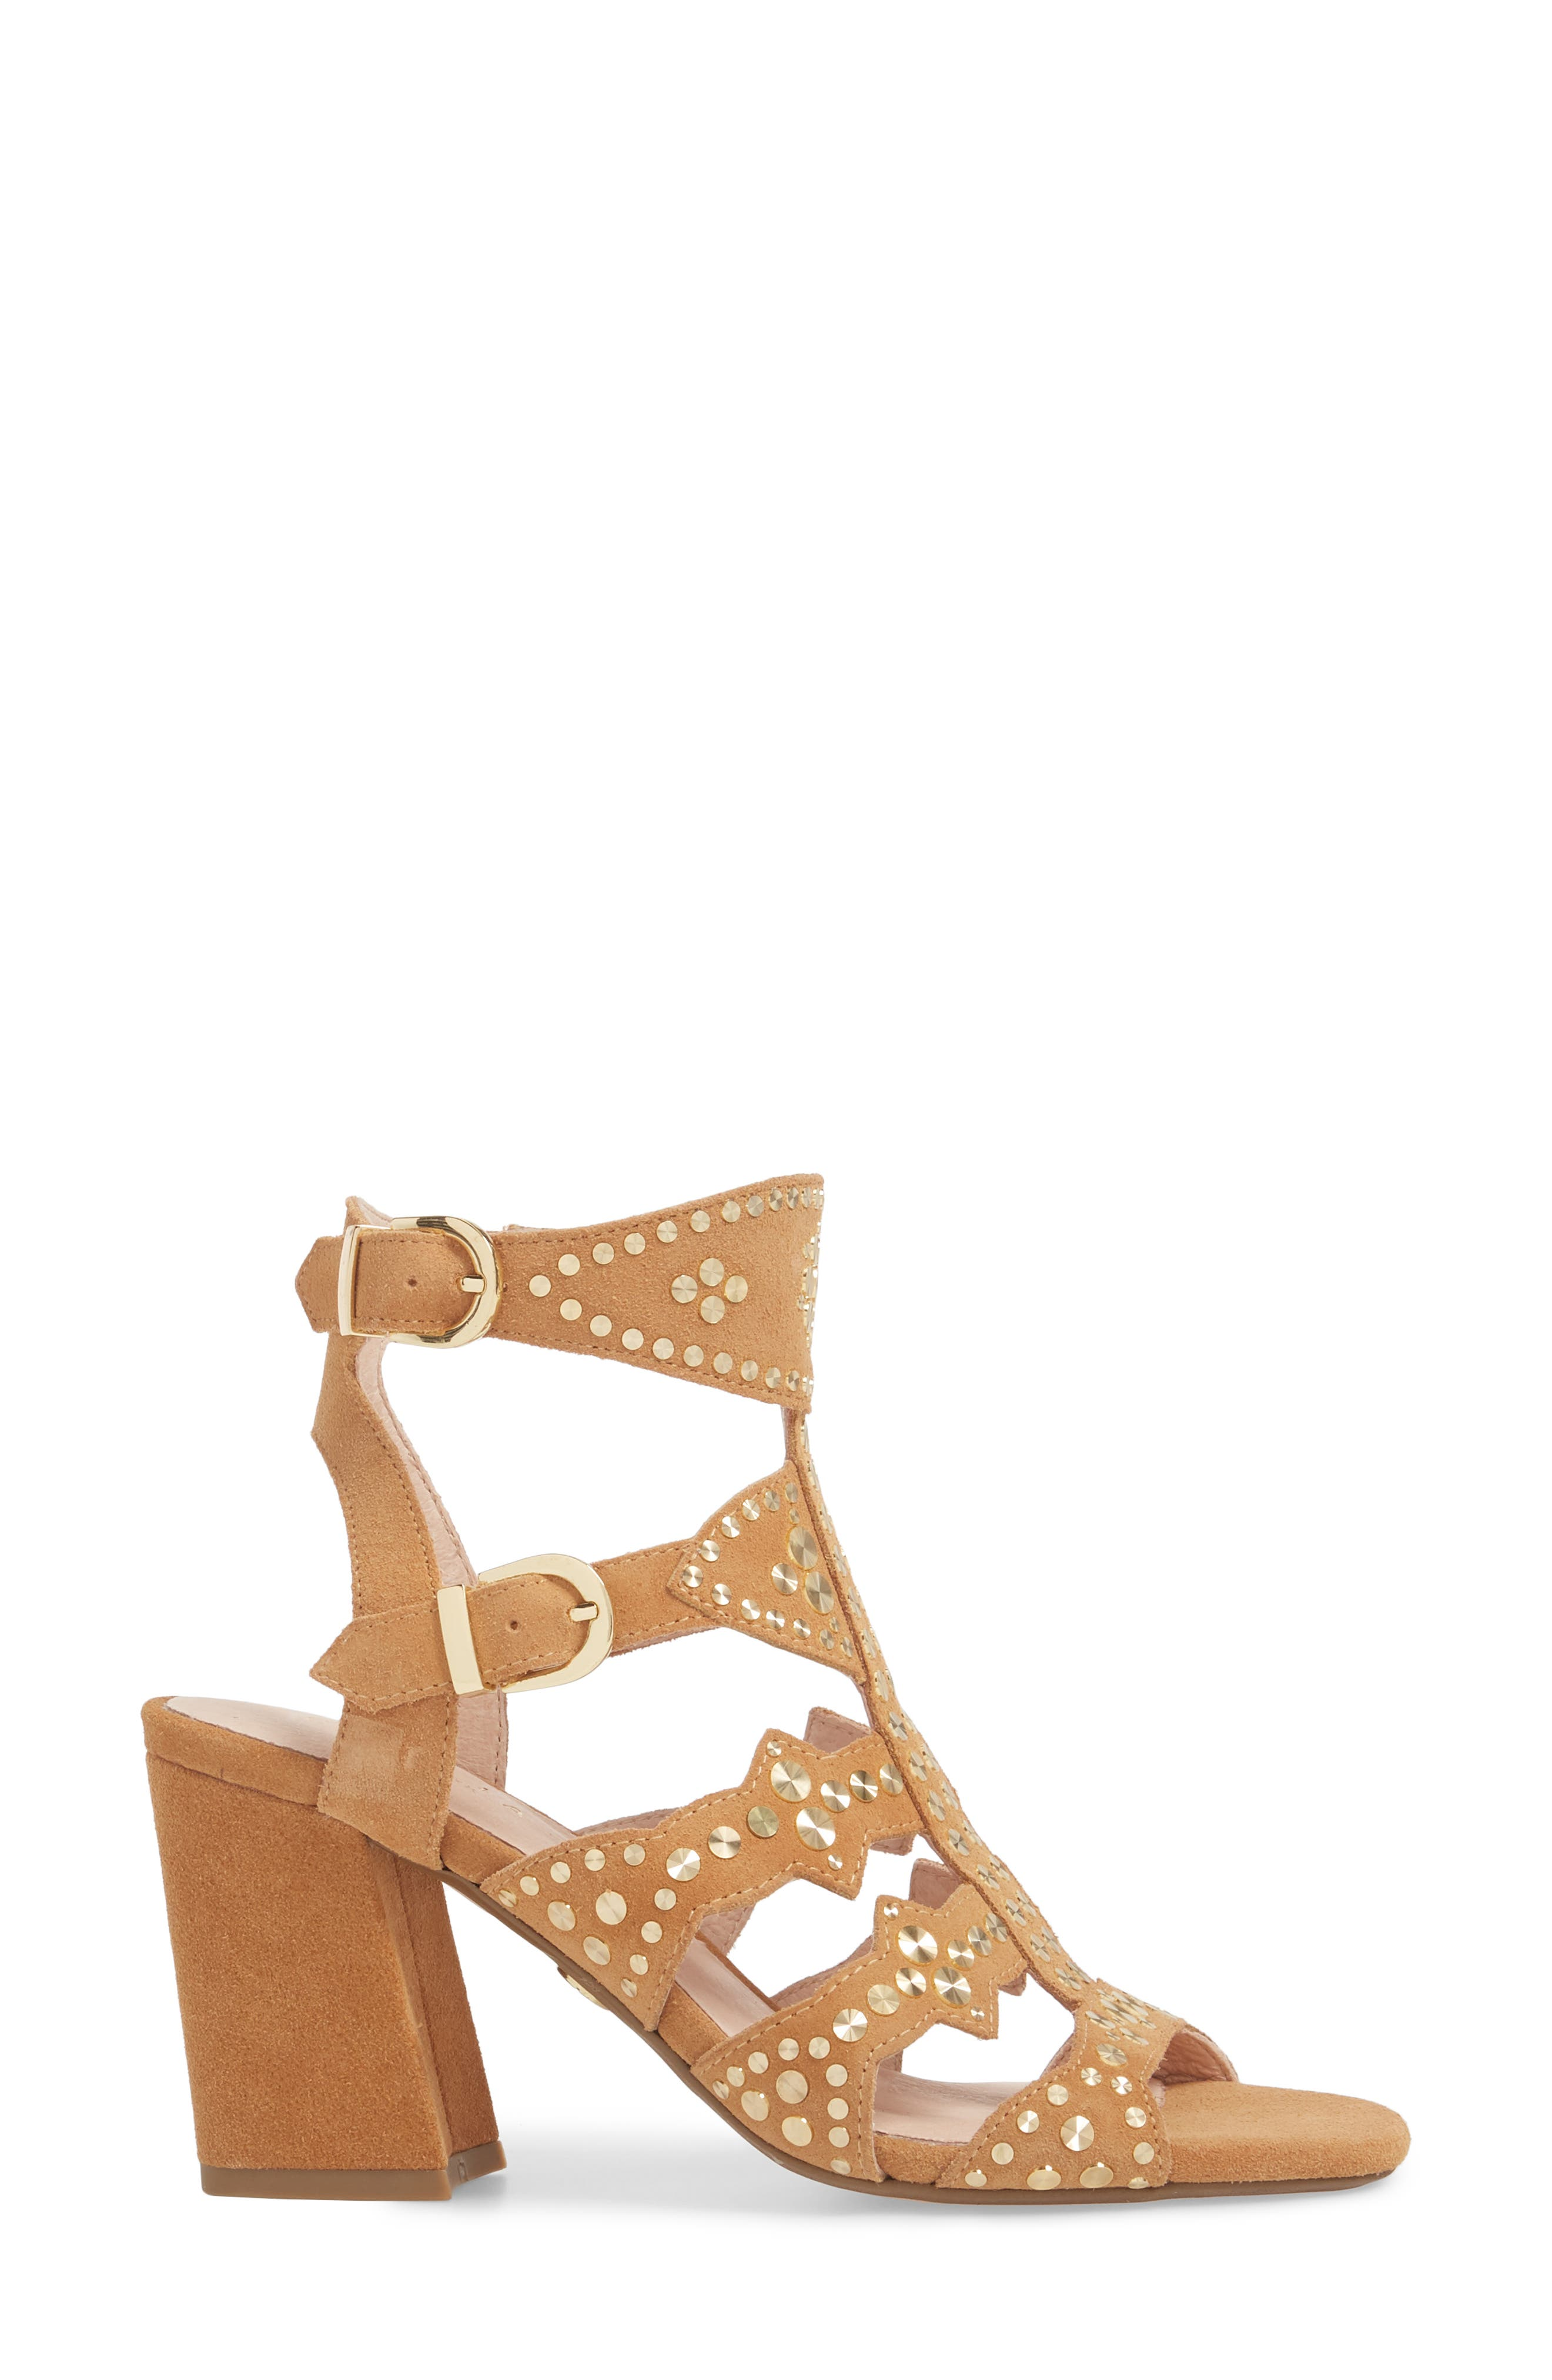 CECELIA NEW YORK,                             Cosmo Studded Sandal,                             Alternate thumbnail 3, color,                             200